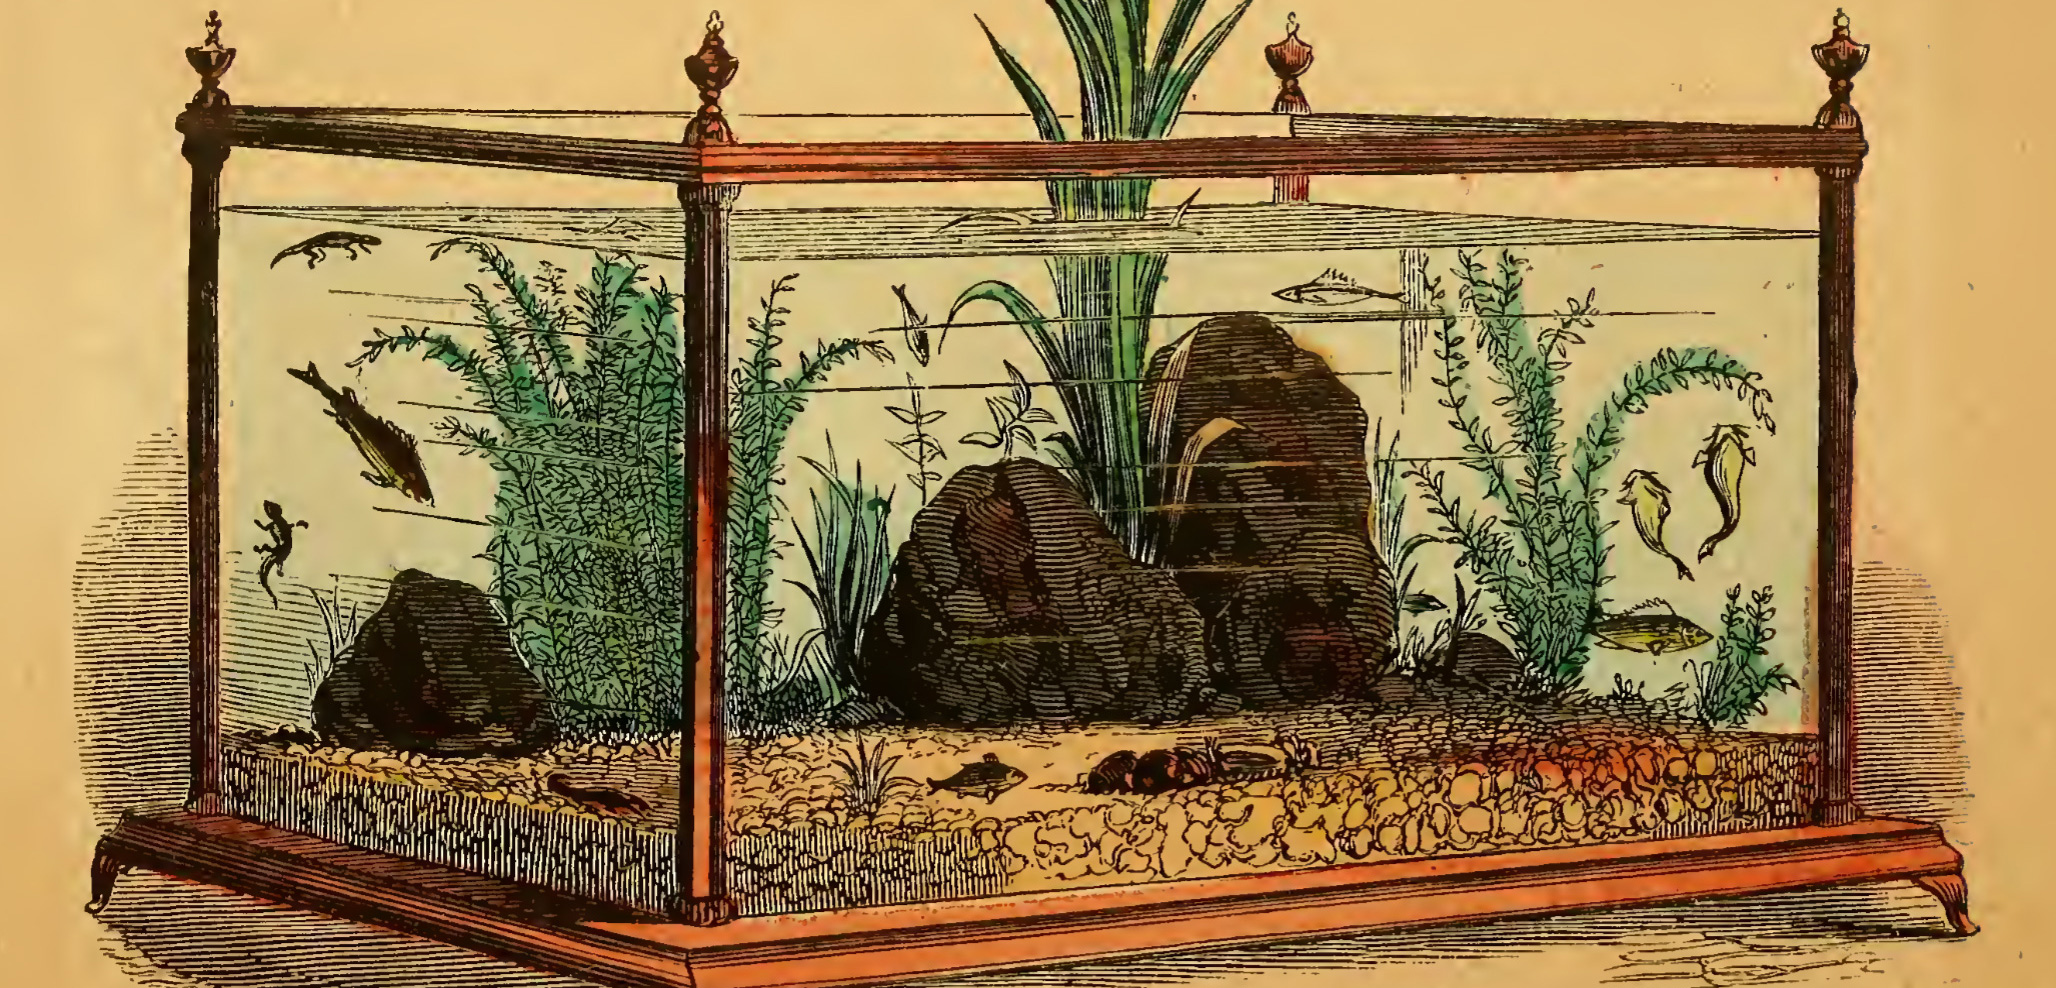 This image is from Henry D. Butler's 1858 book, The Family Aquarium, one of the first step-by-step guides to maintaining a home aquarium.